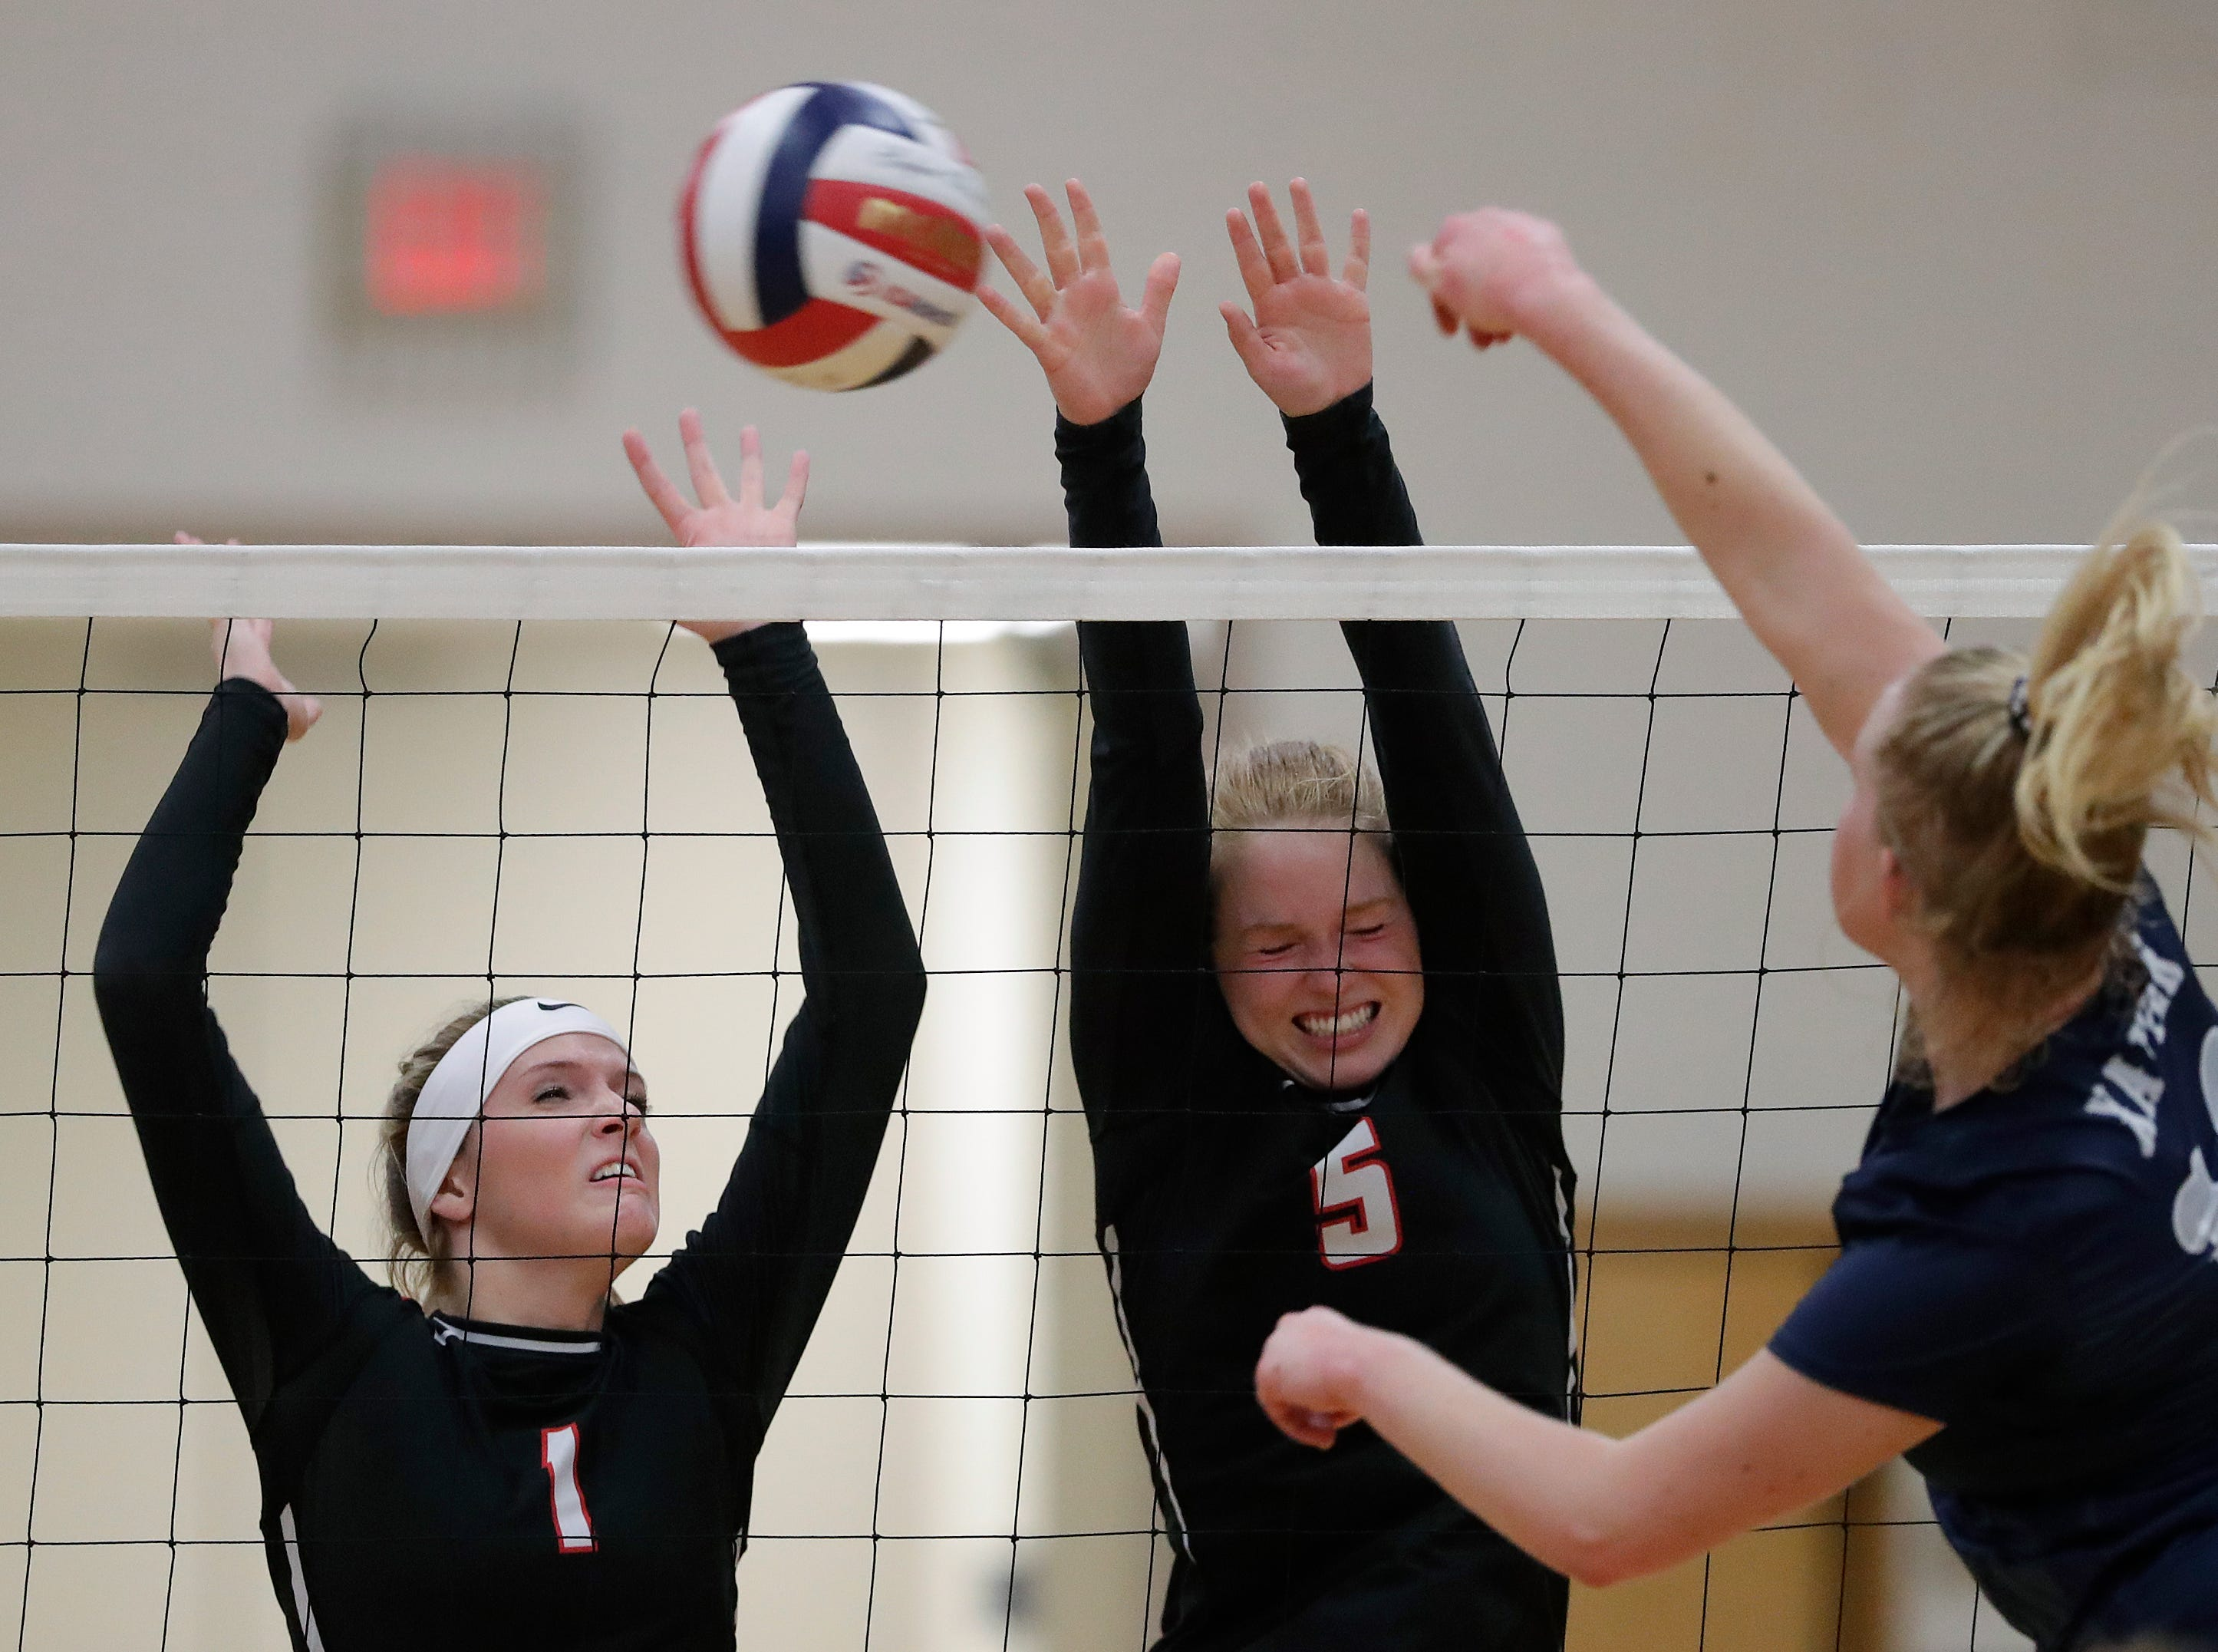 New London High School's Marissa Messina (1) and Abbi Gillespie (5) block against Xavier High School's Emma Oelhafen (10) during their girls volleyball match Thursday, Sept. 13, 2018, in Appleton, Wis. 